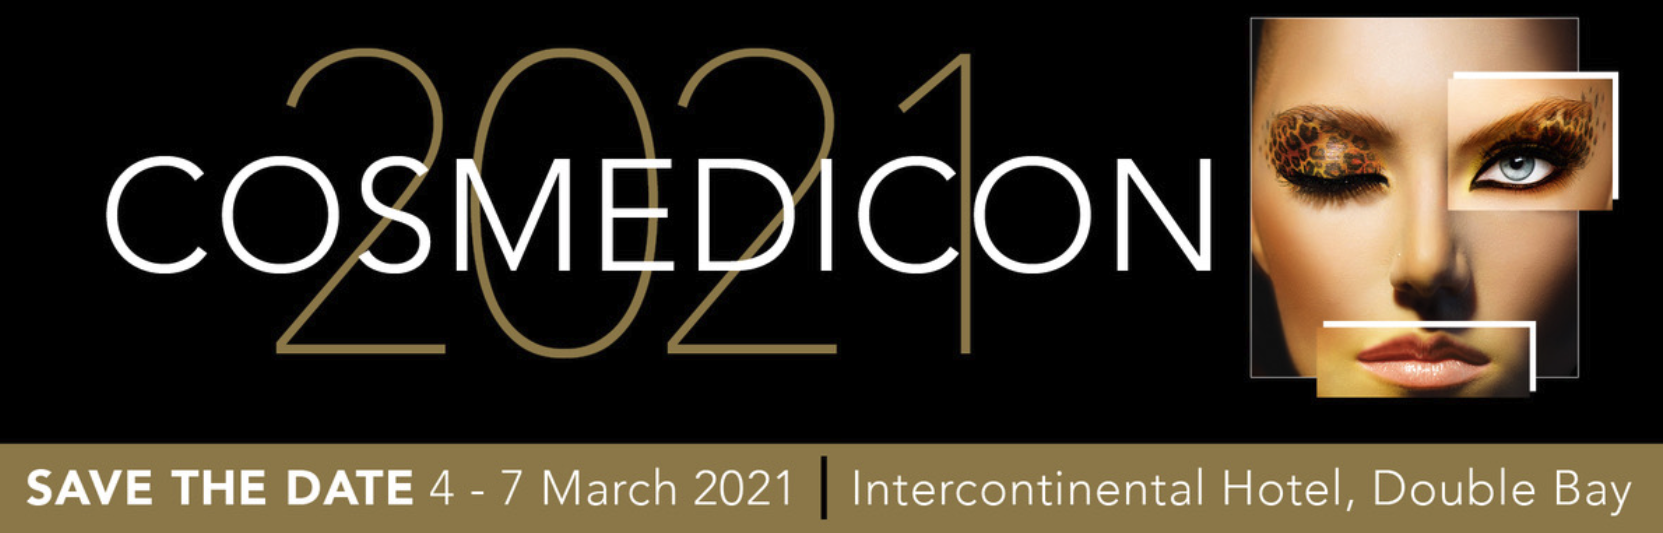 WELCOME TO COSMEDICON 2020 CONFERENCE